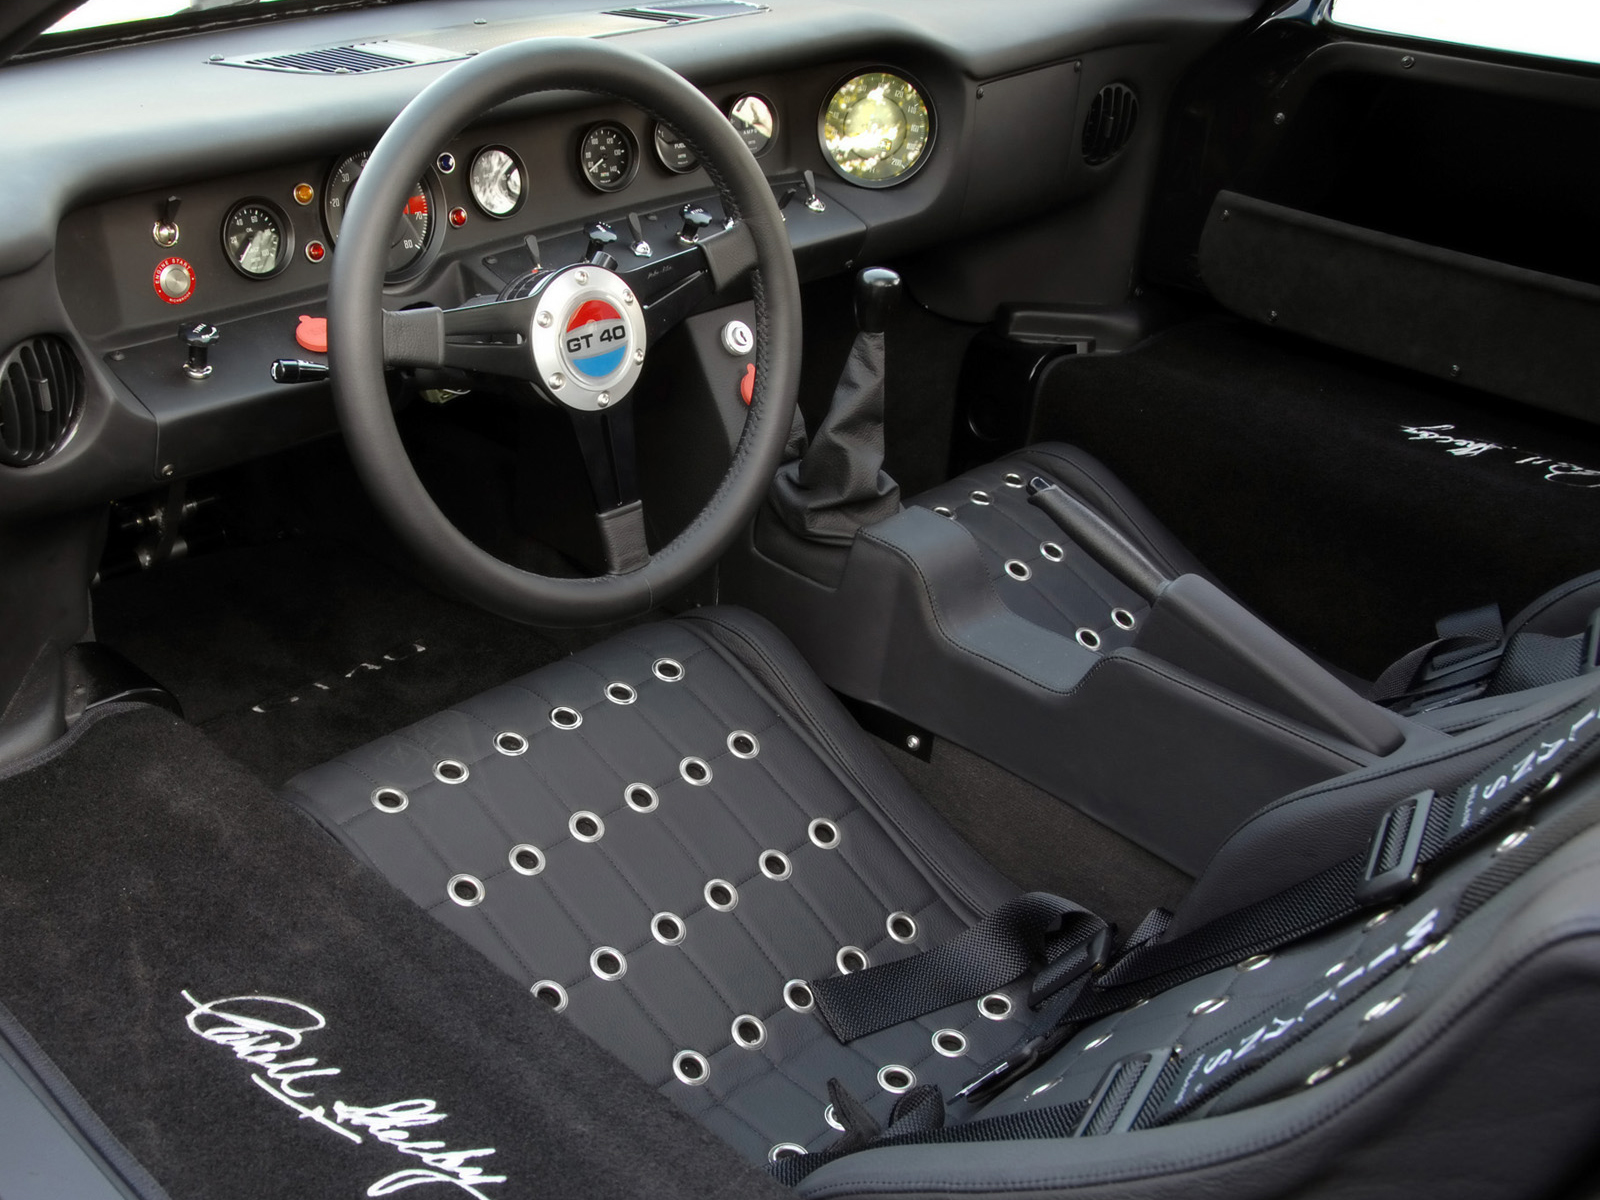 2008 shelby mkii gt40 supercar supercars race racing interior wallpaper 1600x1200 94814. Black Bedroom Furniture Sets. Home Design Ideas